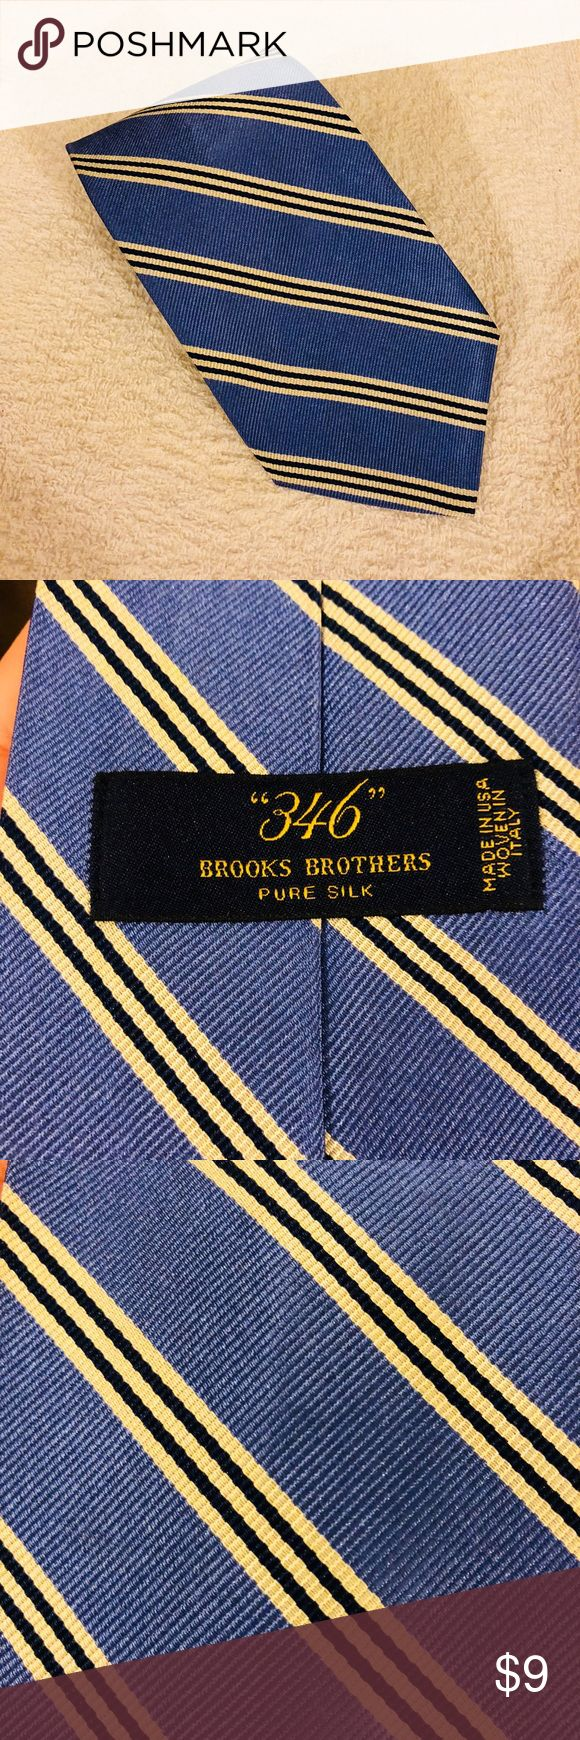 Brooks Brothers Blue w/ White & Navy Stripe Tie Brooks Brothers Blue with White and Navy Blue Stripe Silk Necktie! Great condition! Please make reasonable offers and bundle! Ask questions! Brooks Brothers Accessories Ties